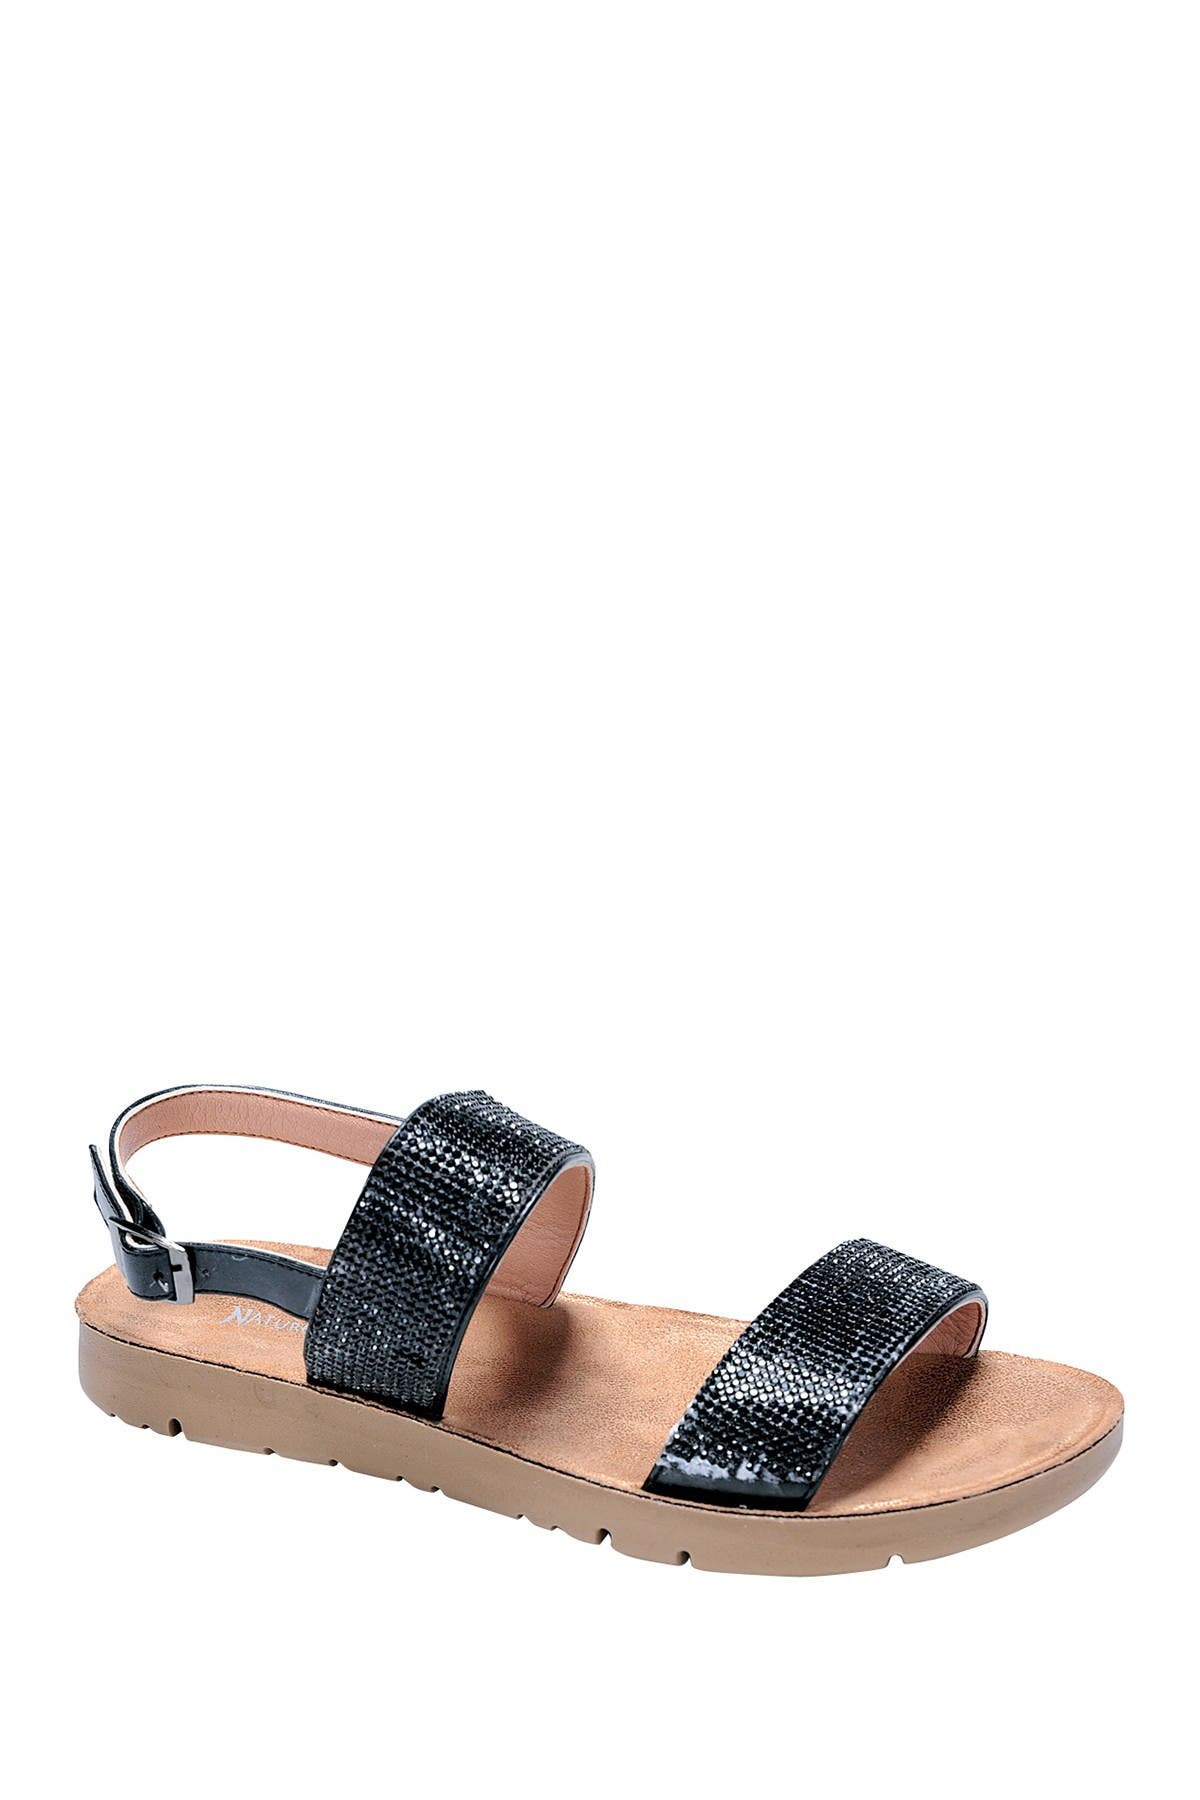 Image of Nature Breeze Delight Comfort Sandal